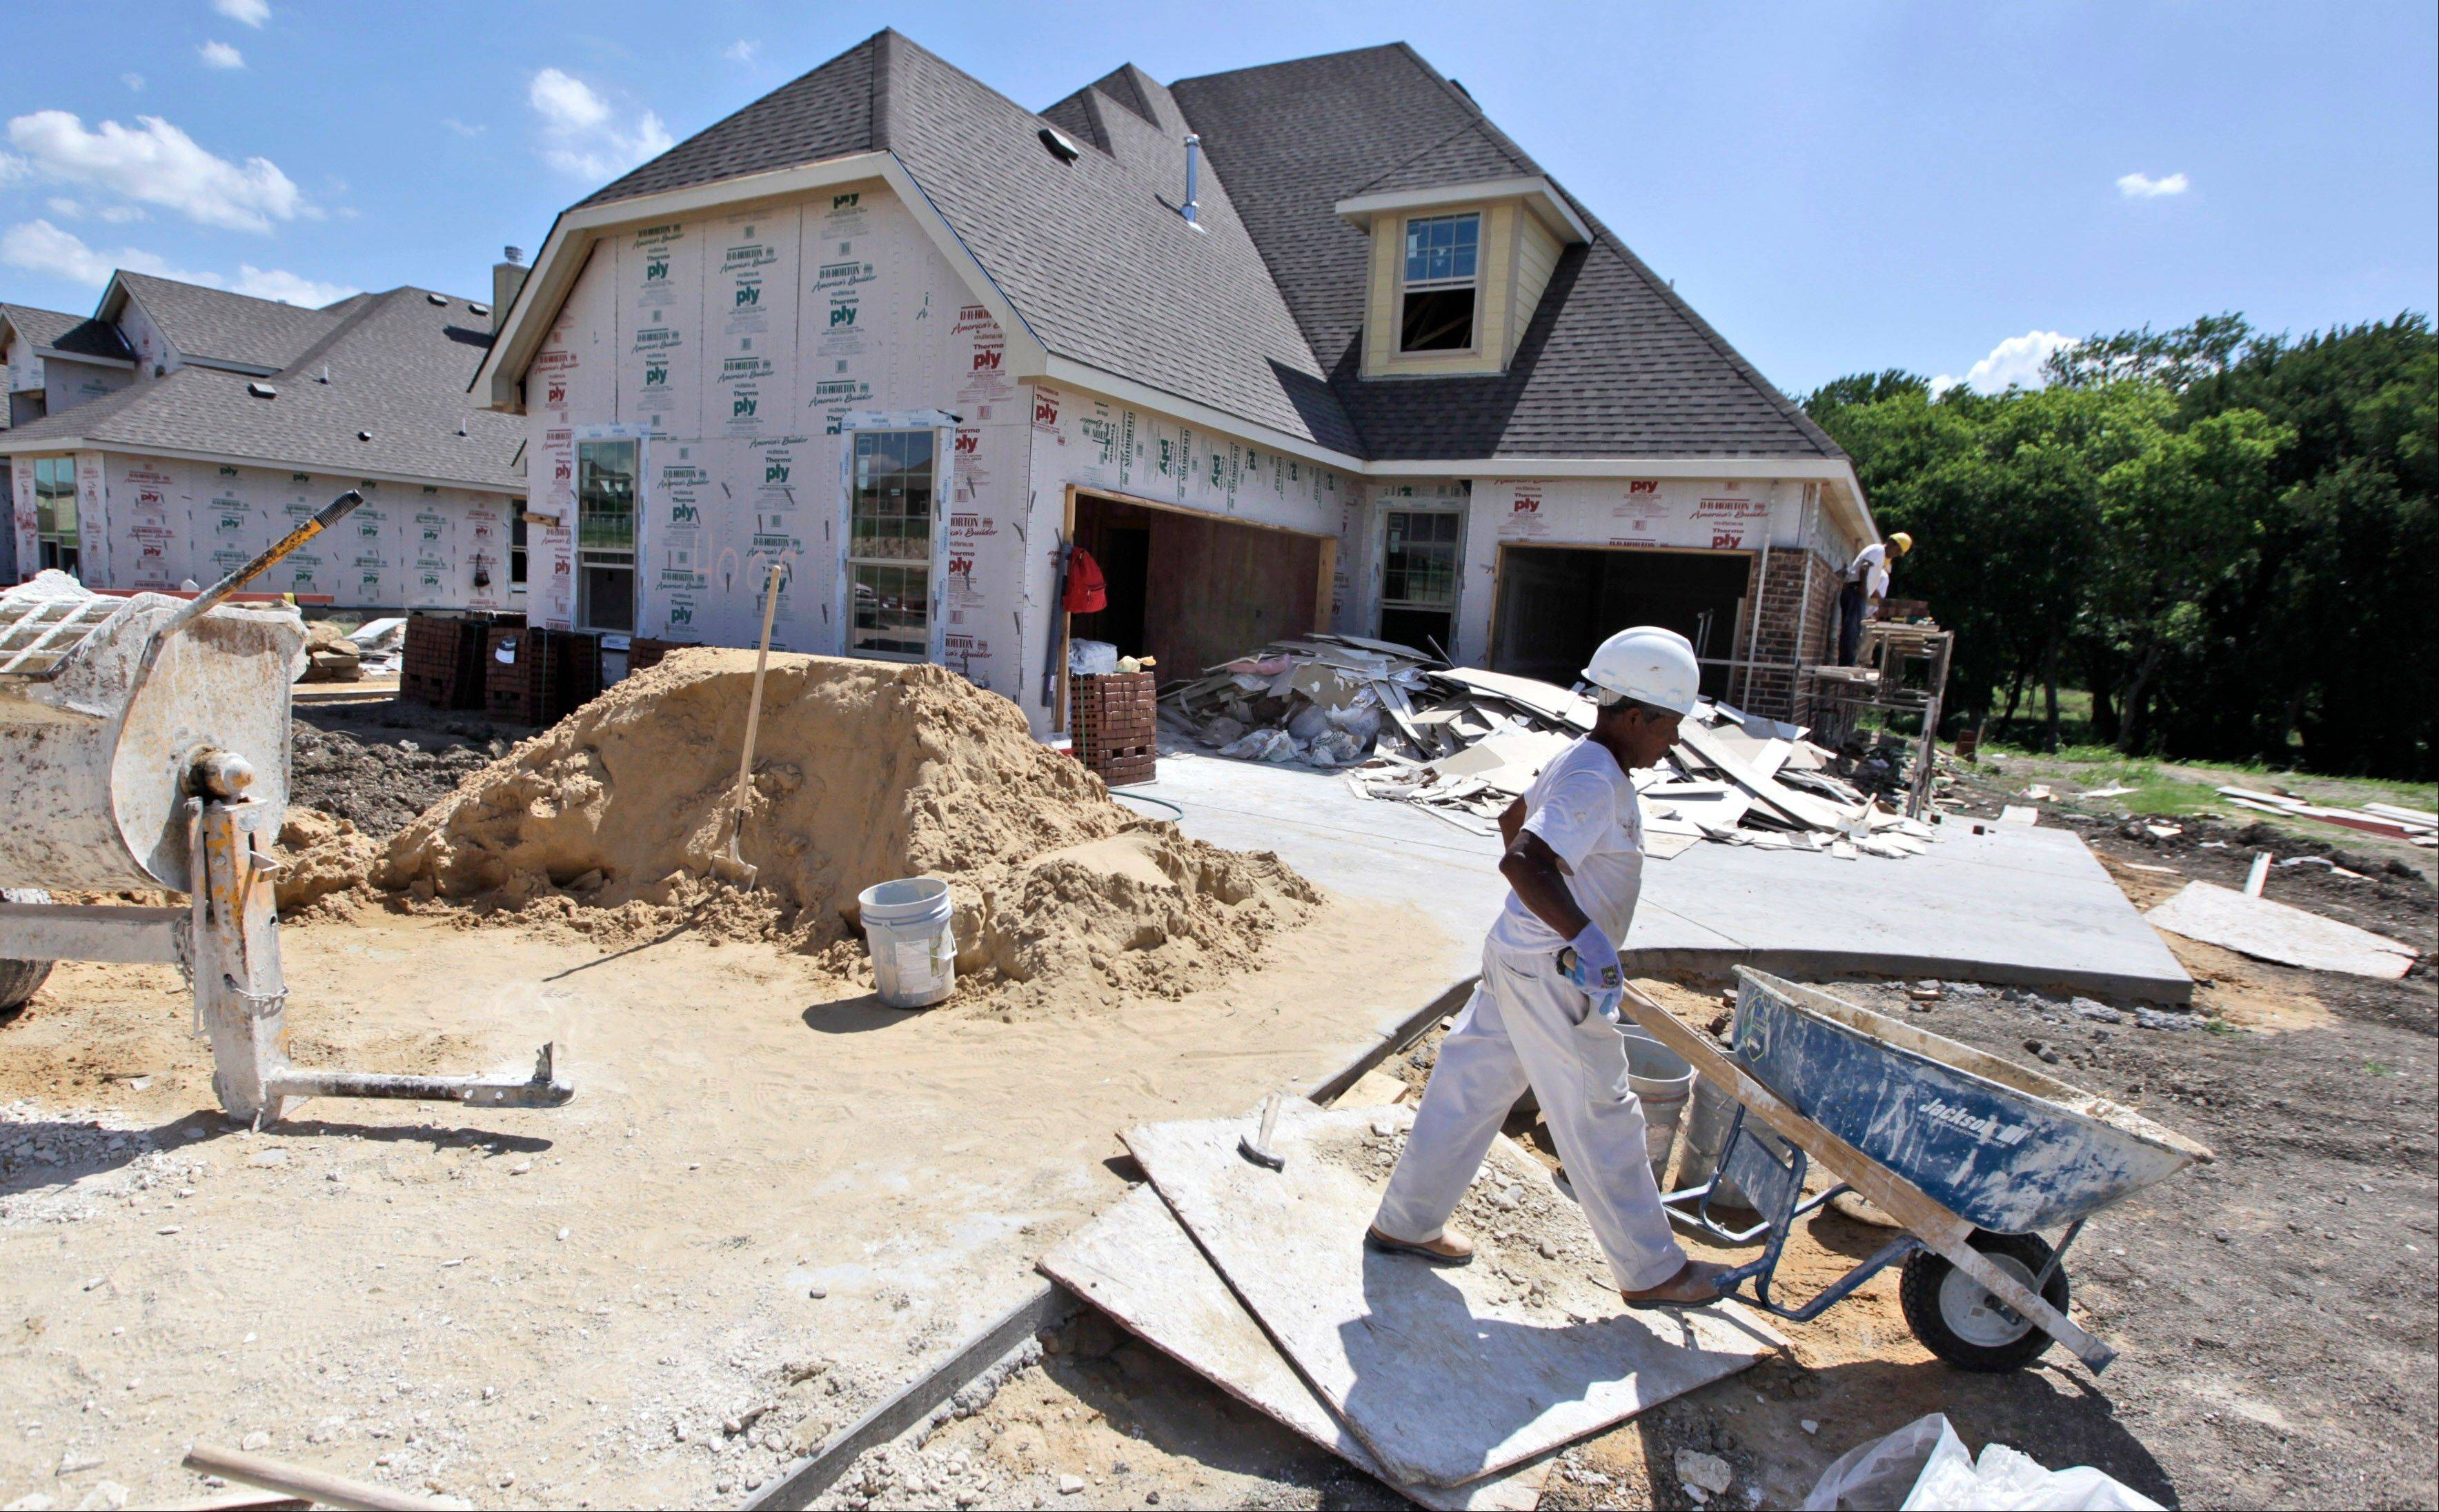 U.S. builders broke ground on the most new homes and apartments in nearly four years last month, the latest evidence of a slow housing recovery. The Commerce Department said Wednesday that housing starts rose 6.9 percent in June from May to a seasonally adjusted annual rate of 760,000. That's the highest since October 2008.